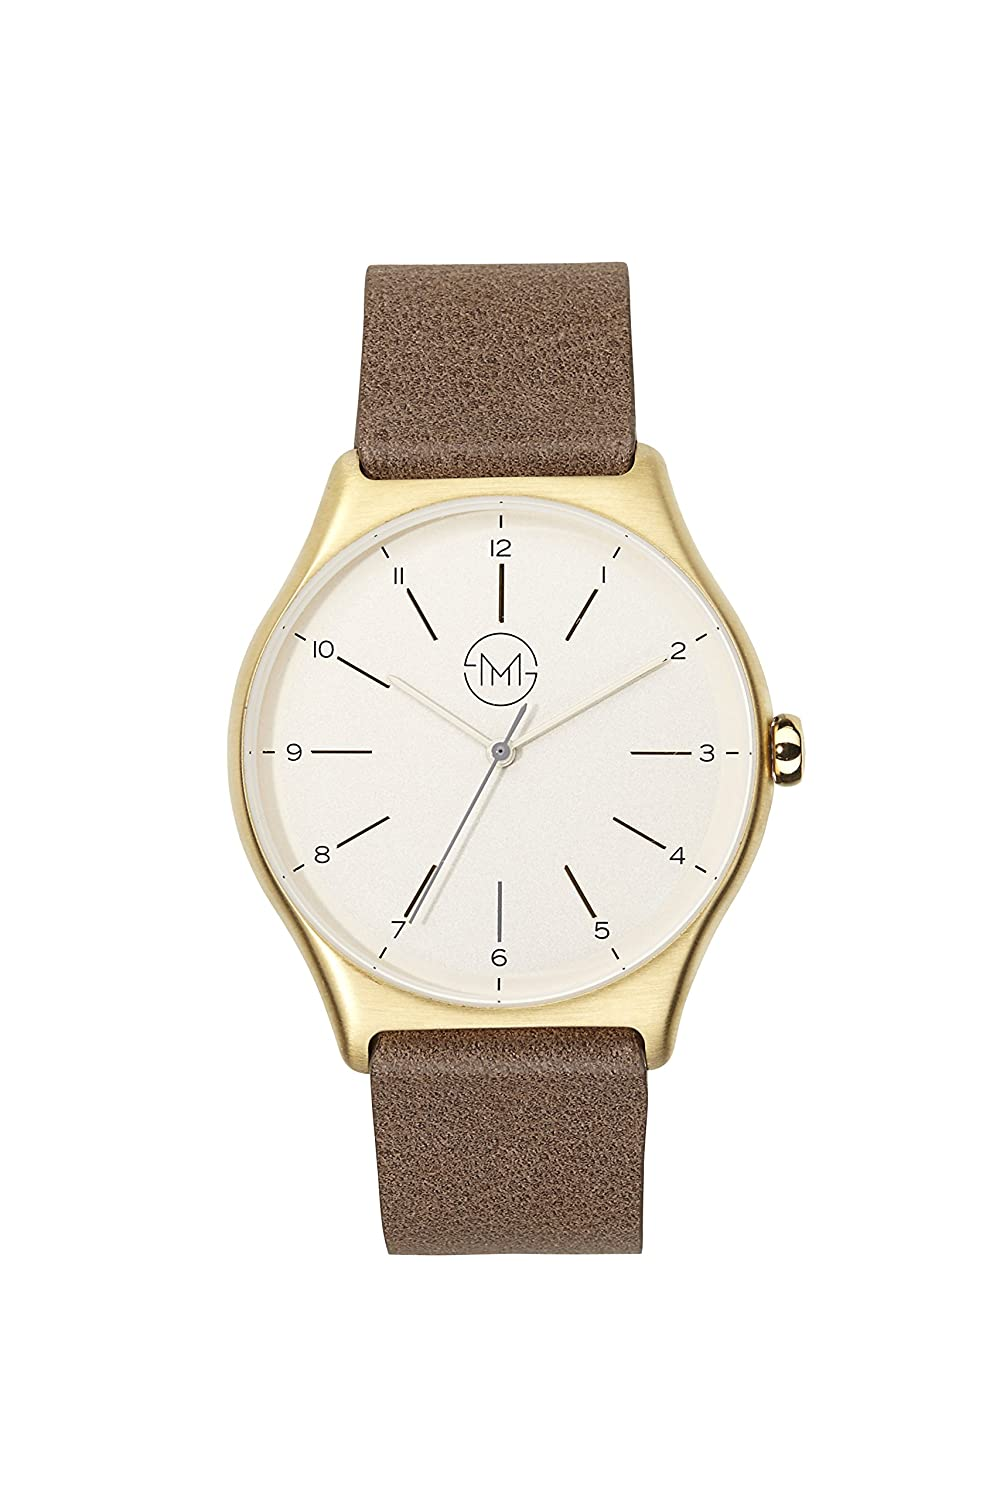 slim made one 09 - Extra schlanke unisex Armbanduhr in gold - braun